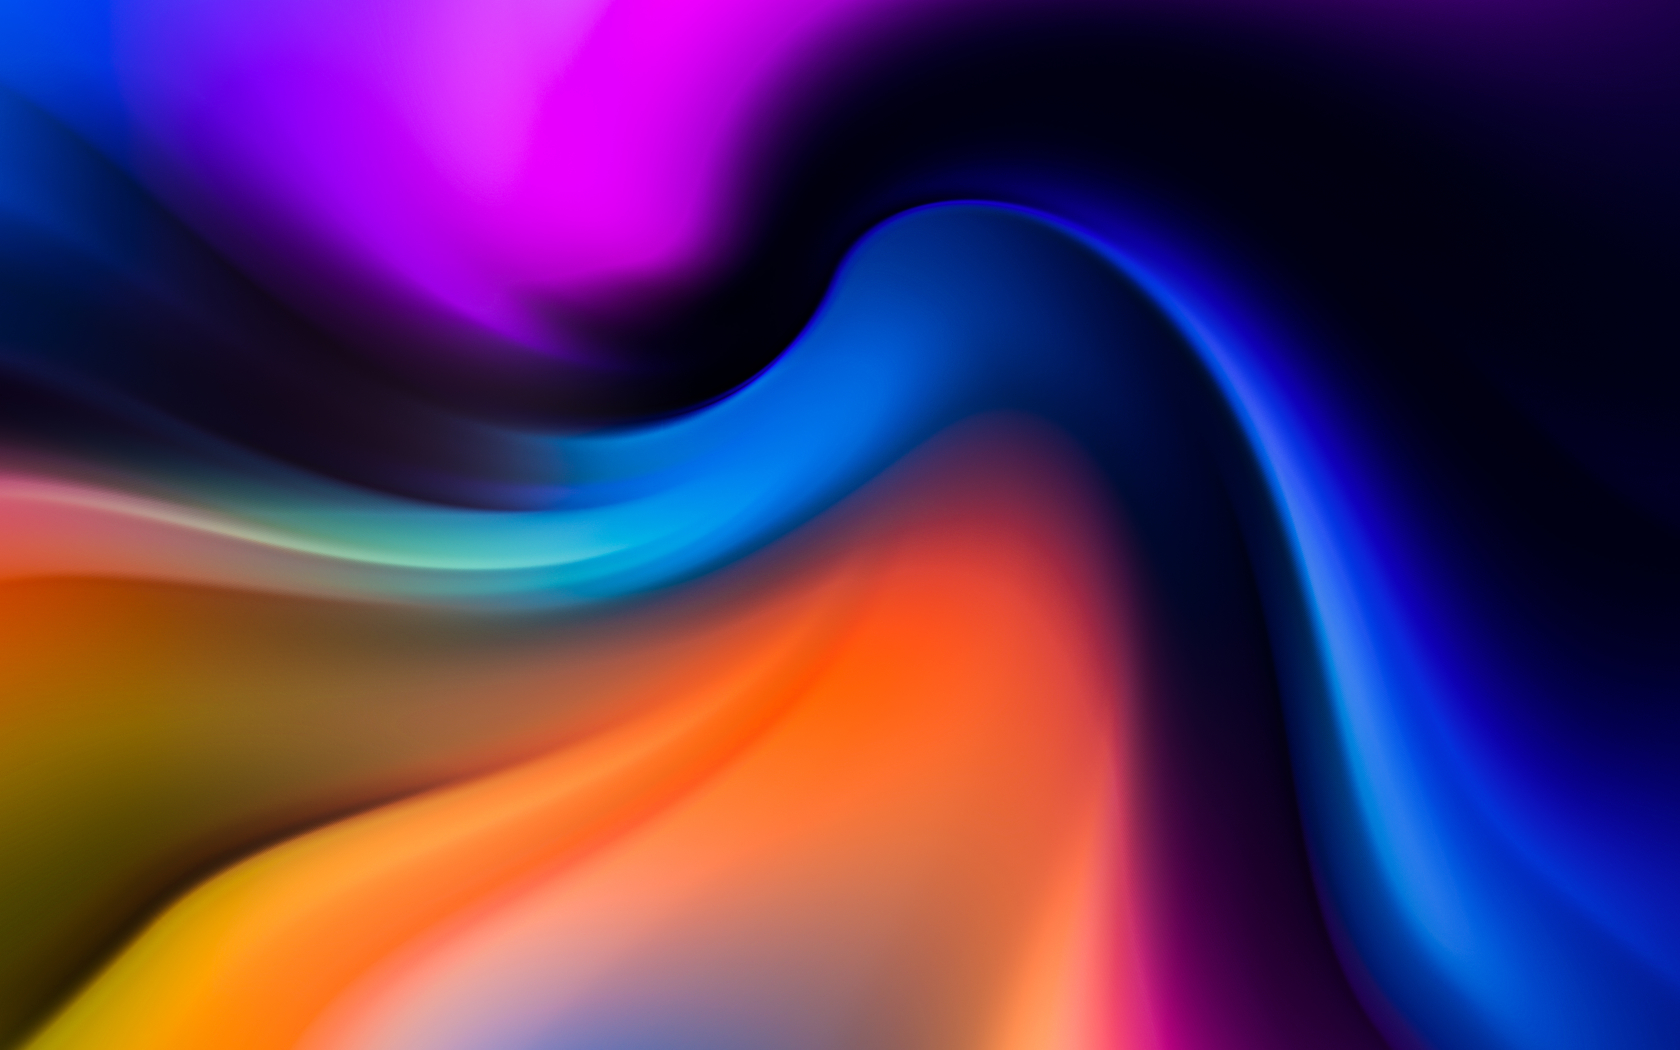 Color Noise 8K Wallpaper in 1680x1050 Resolution